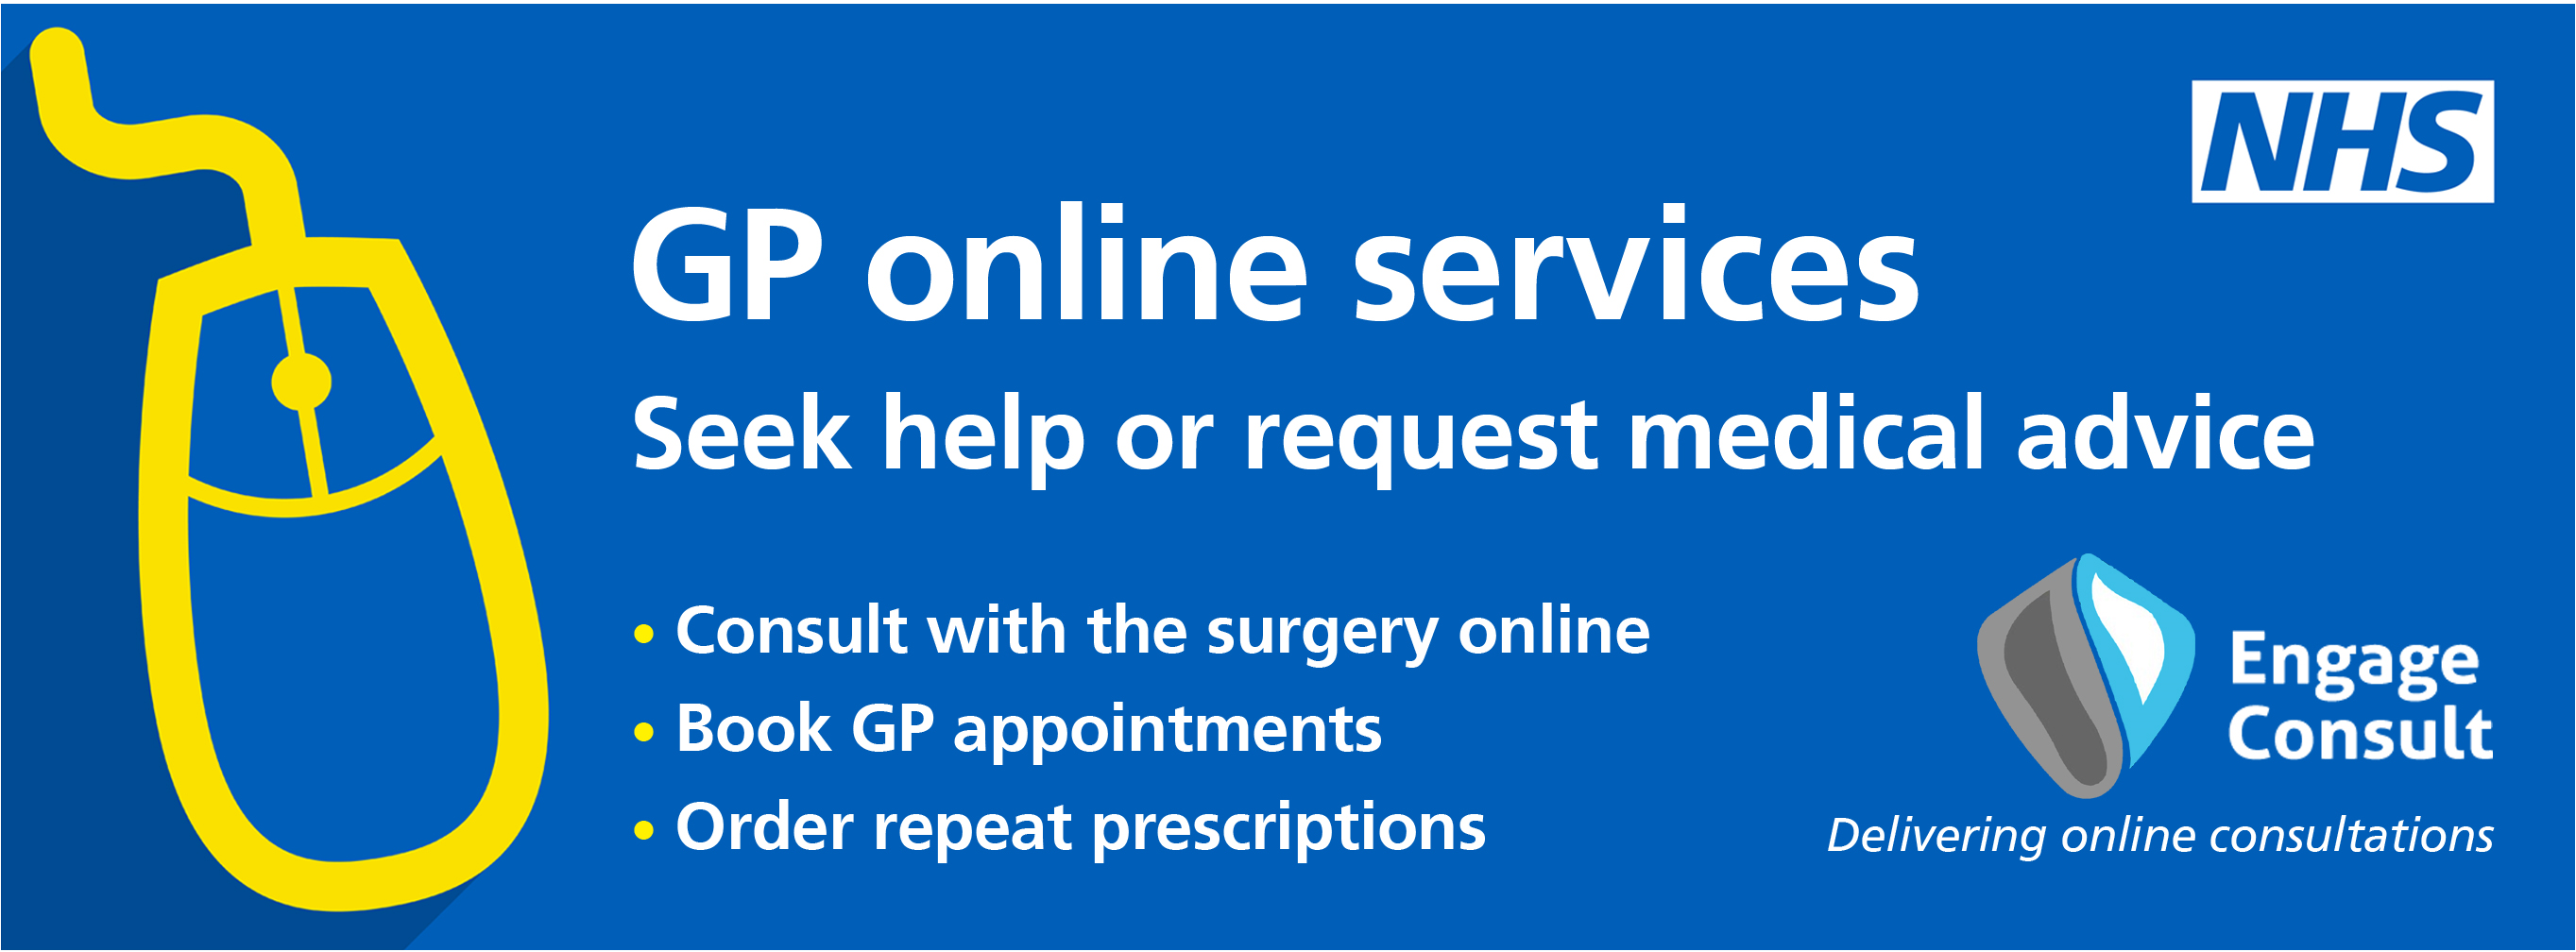 GP online services. Seek help or request medical advice. Consult with the surgery online. Book GP appointments.  Order repeat prescriptions. Engage Consult. Delivering online consultations